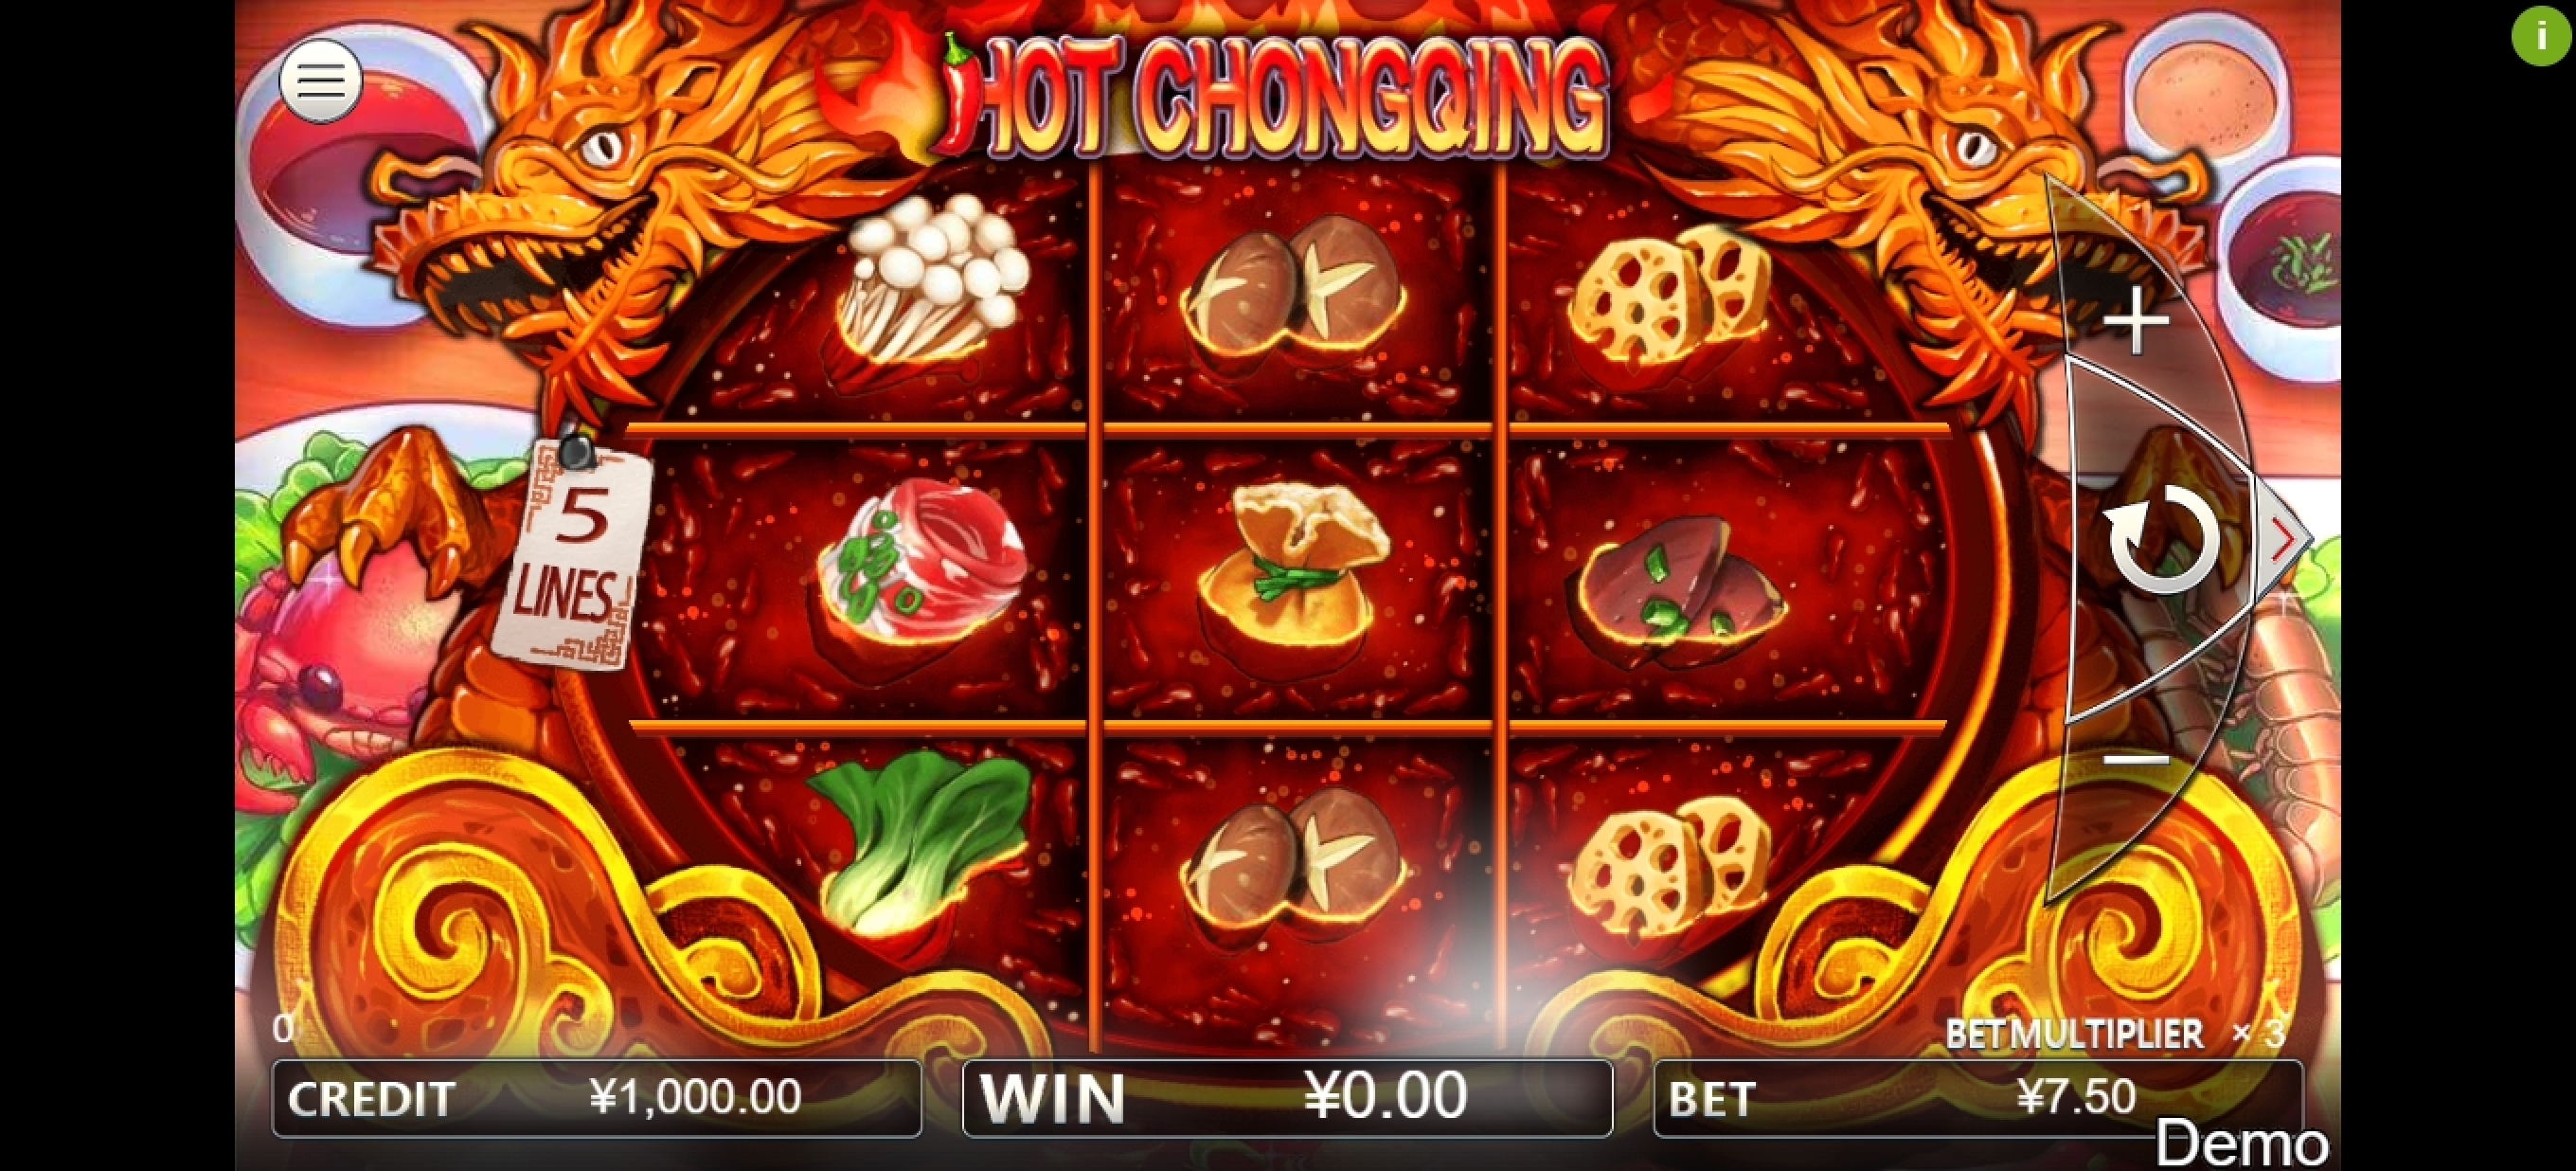 Reels in Hot Chongqing Slot Game by Iconic Gaming